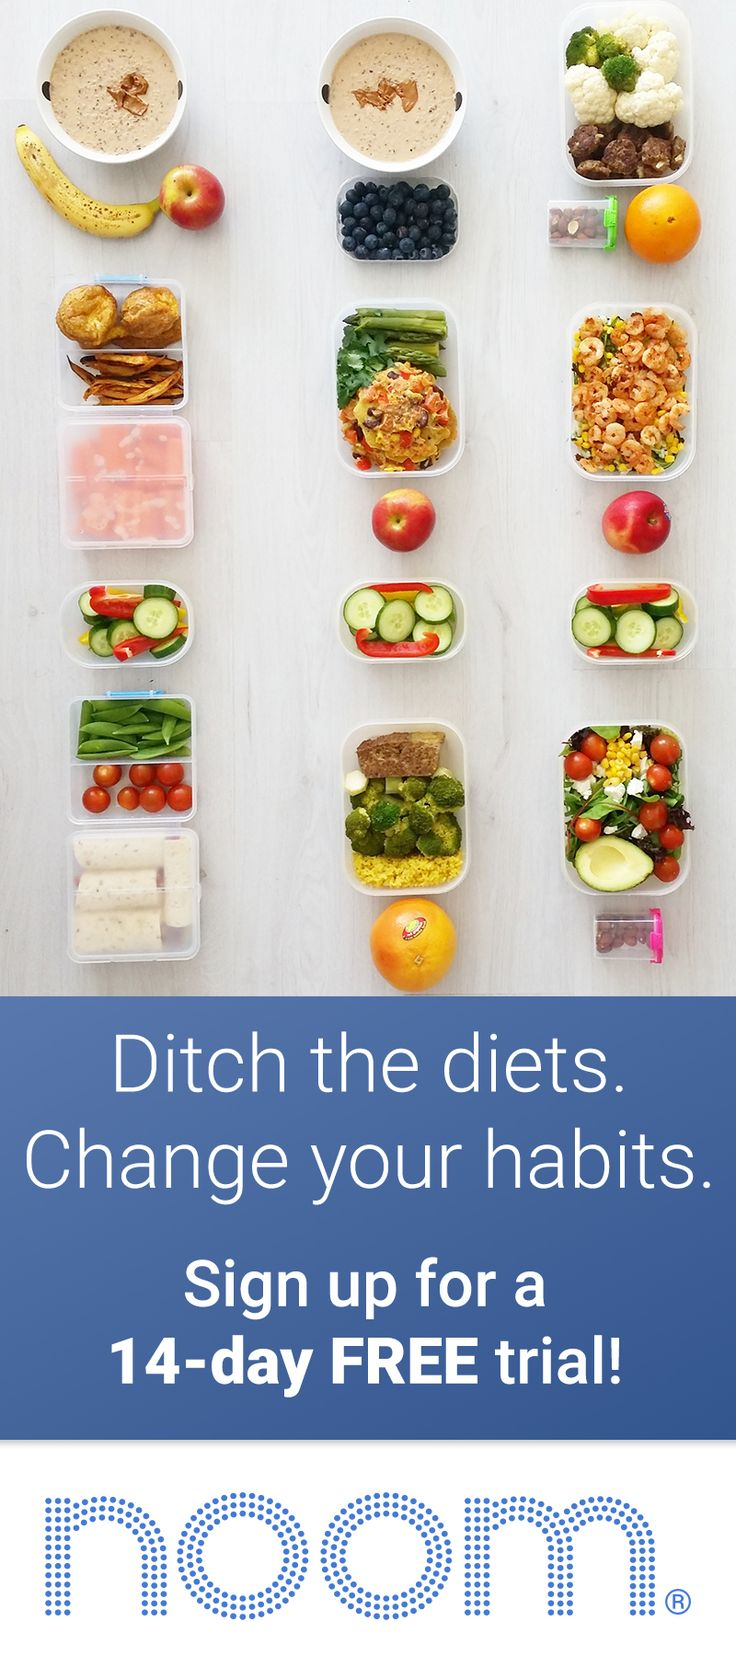 Noom offers 24/7 support with an award-winning, personalized course and expert coaches trained in behavior change to help you stick to your health, weight, and fitness goals. https://ww1.noom.com/programs/health-weight/exsf01/?utm_source=pinterest&utm_content=sf_3.32p